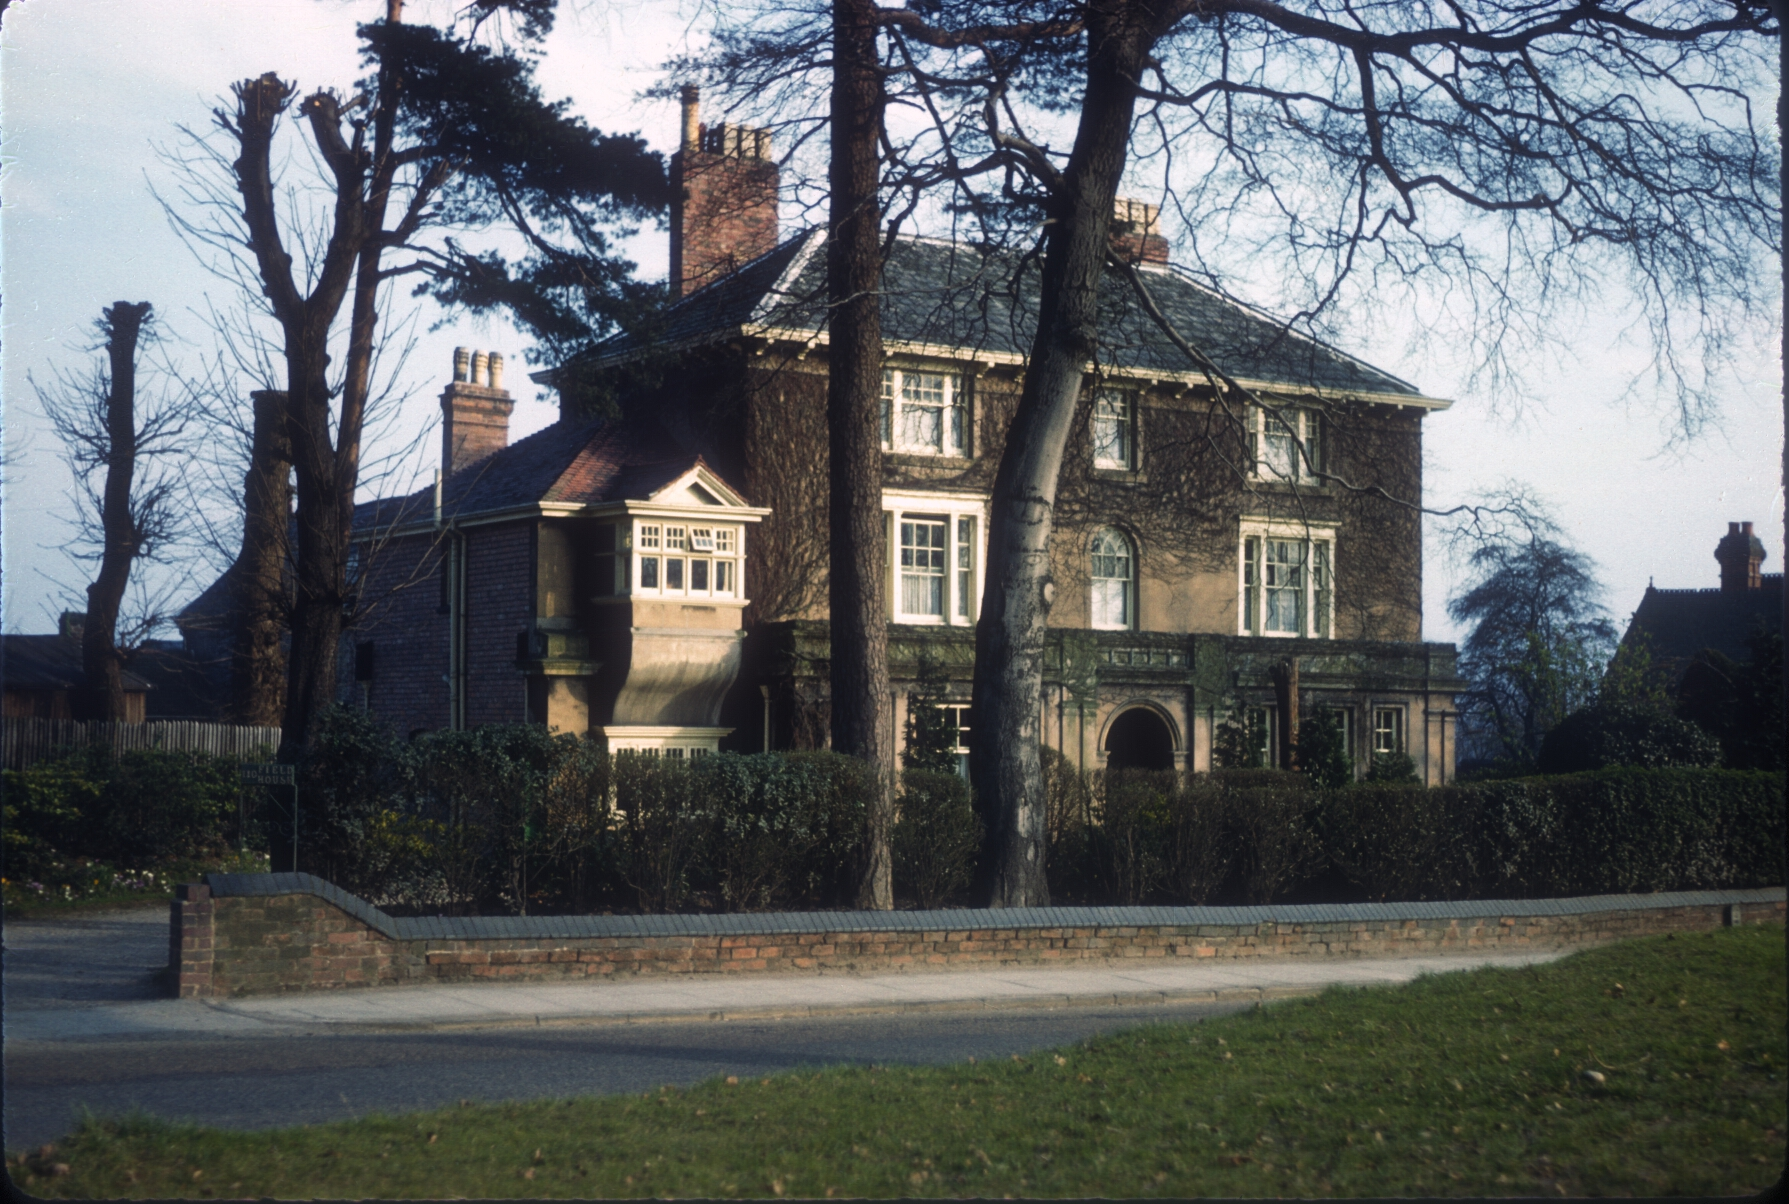 Harborne Field House, 110 Harborne Park Road, Corner of St Mary's Road. 6th March 1961